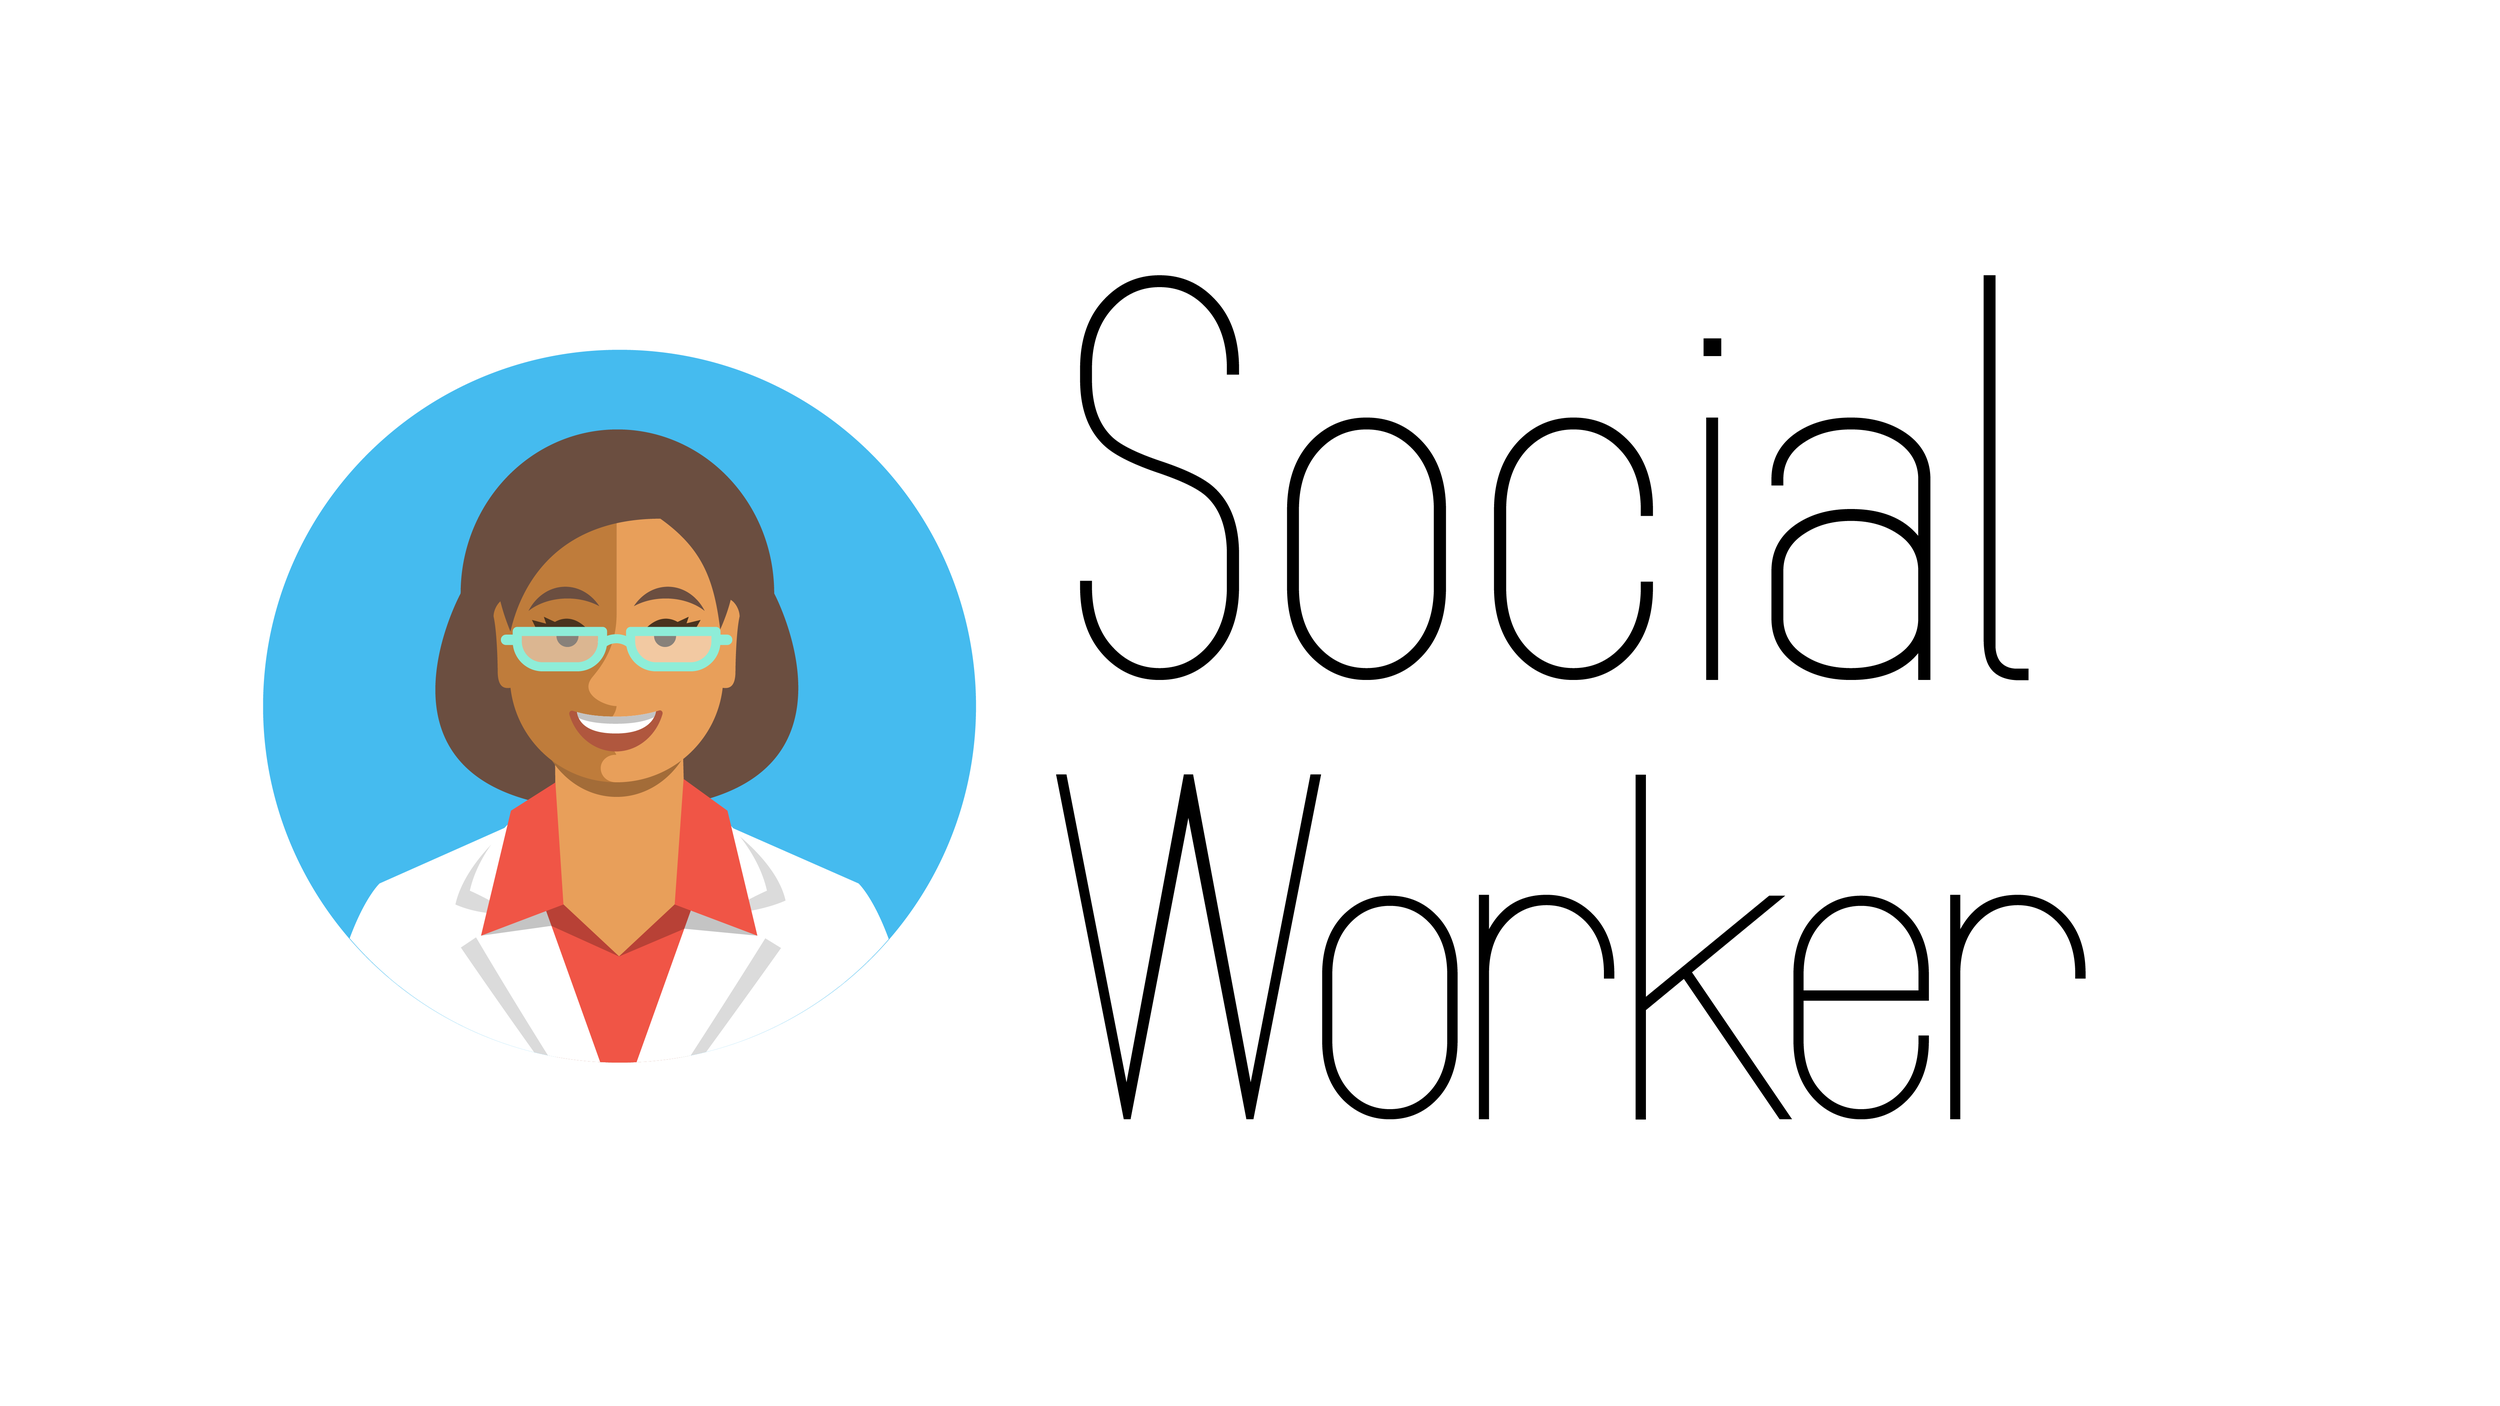 Social Worker Image.png